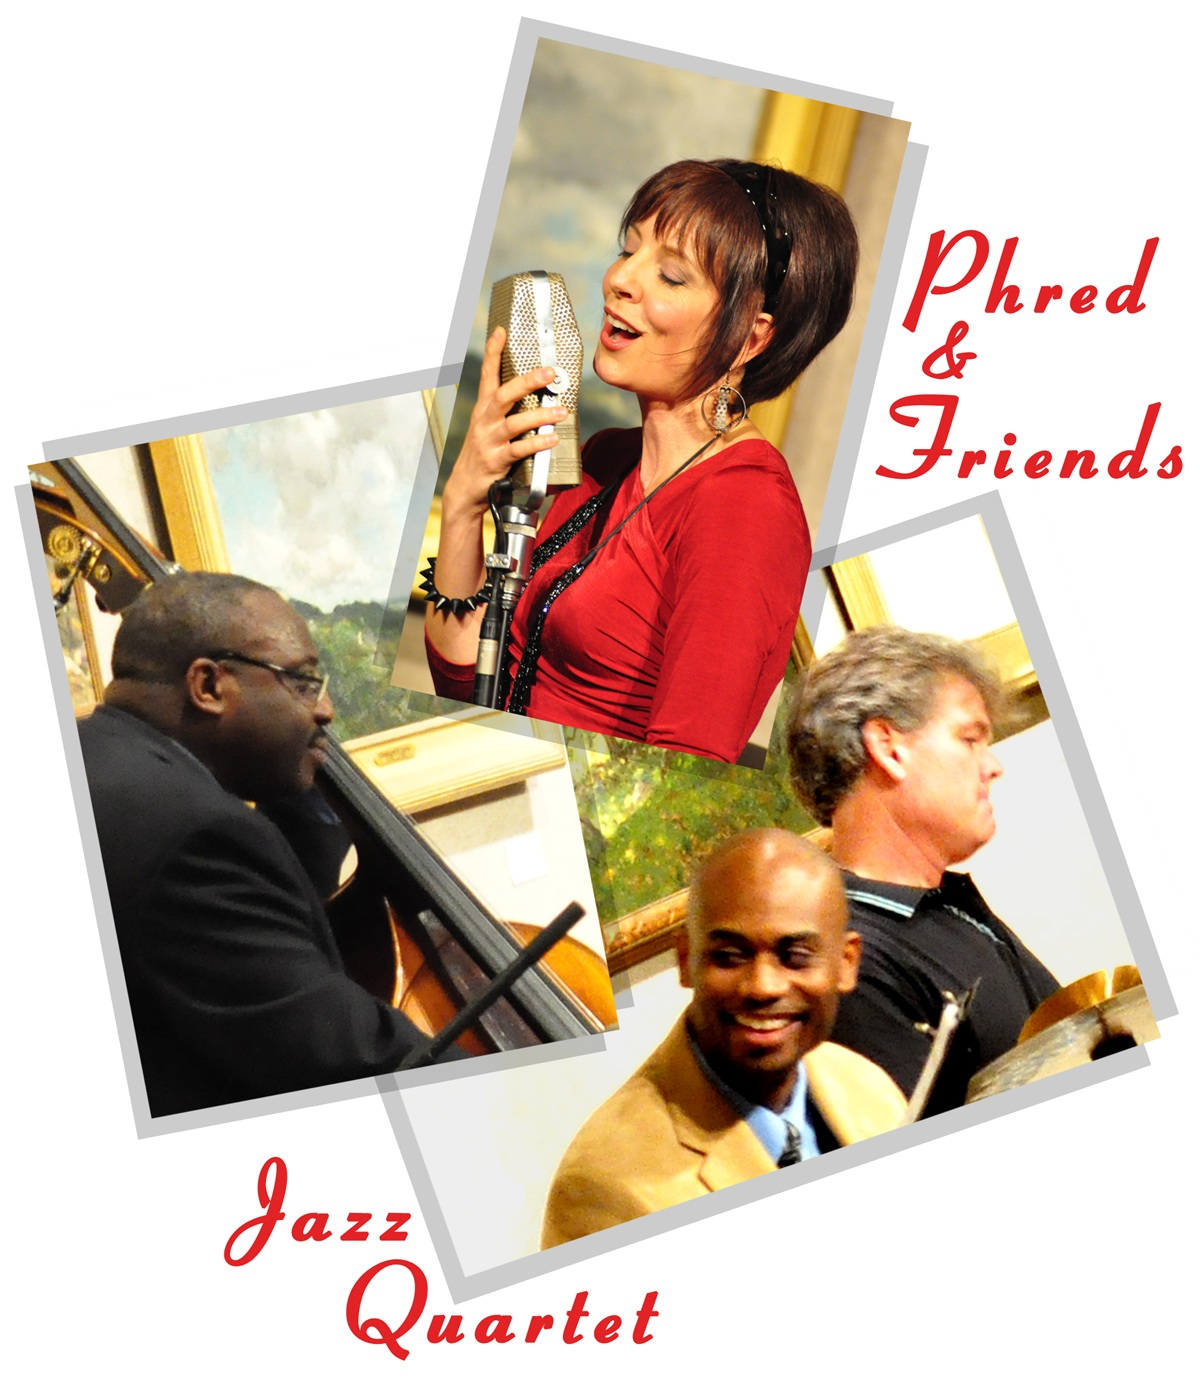 Phred & Friends Jazz Quartet